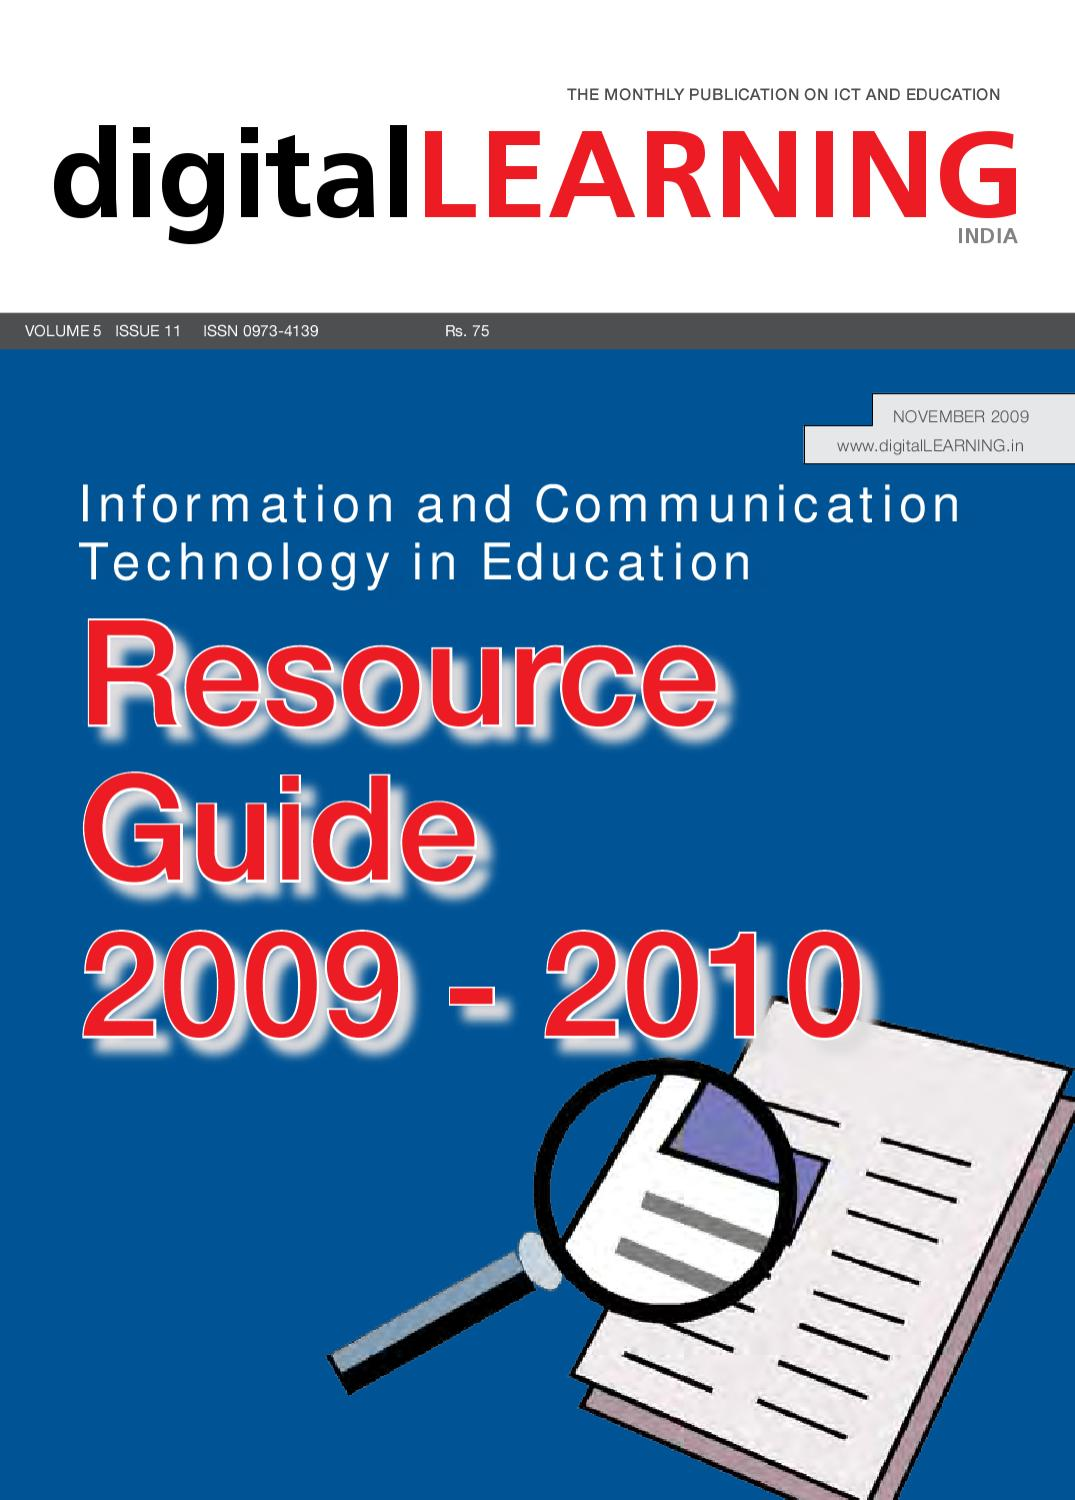 ICT in Education - Resource Guide 2009 - 2010 : November